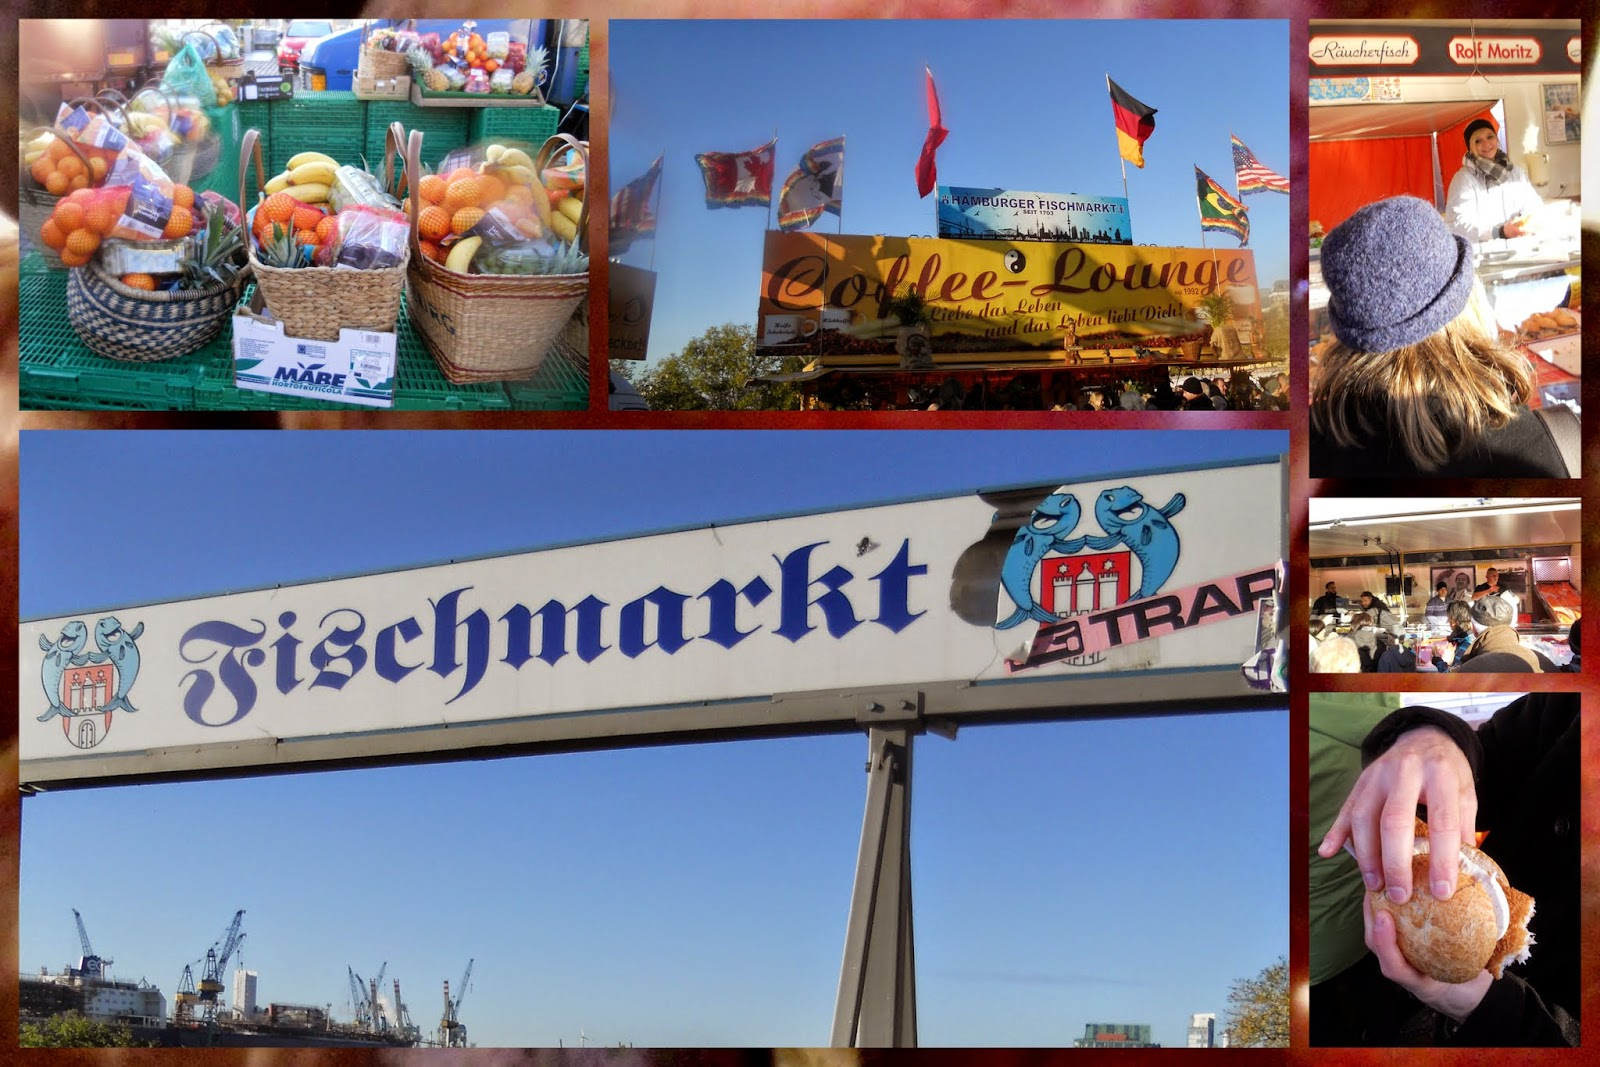 Best Sunday market in Europe: Fischmarkt in Hamburg, Germany